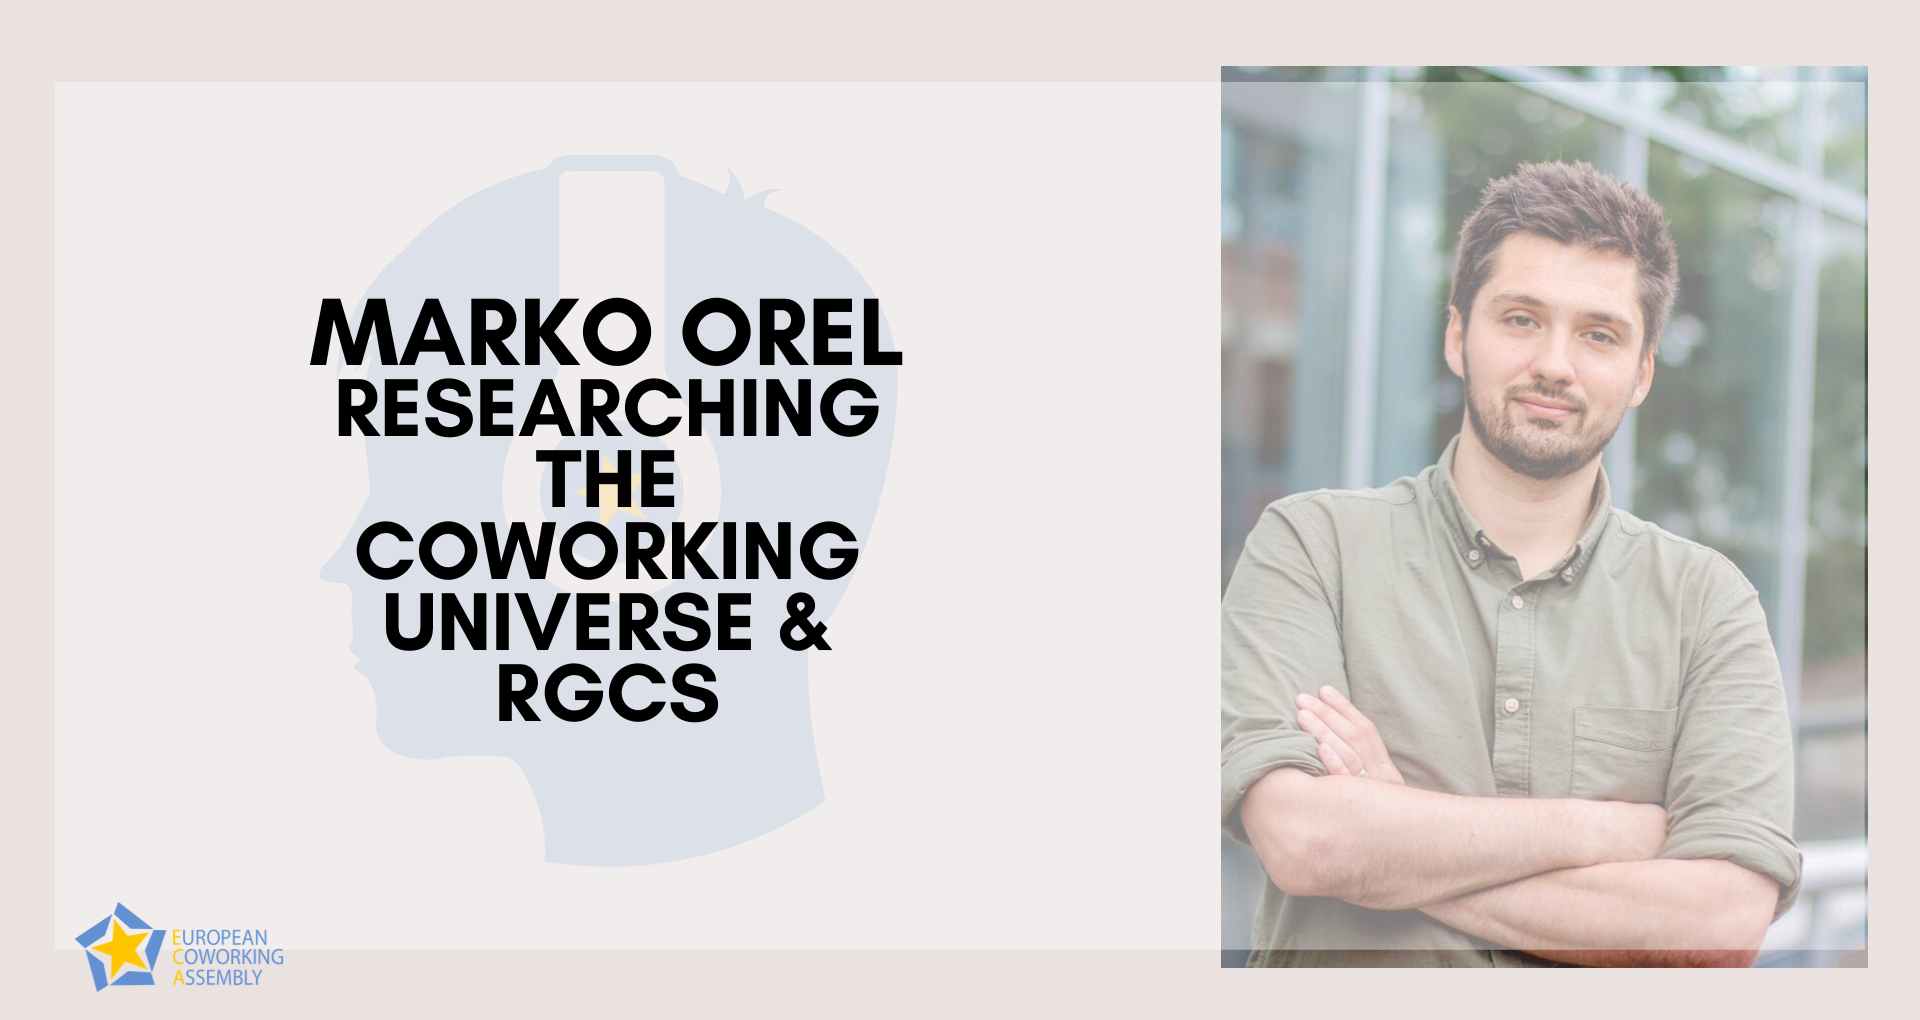 Marko Orel – Researching The Coworking Universe & RGCS